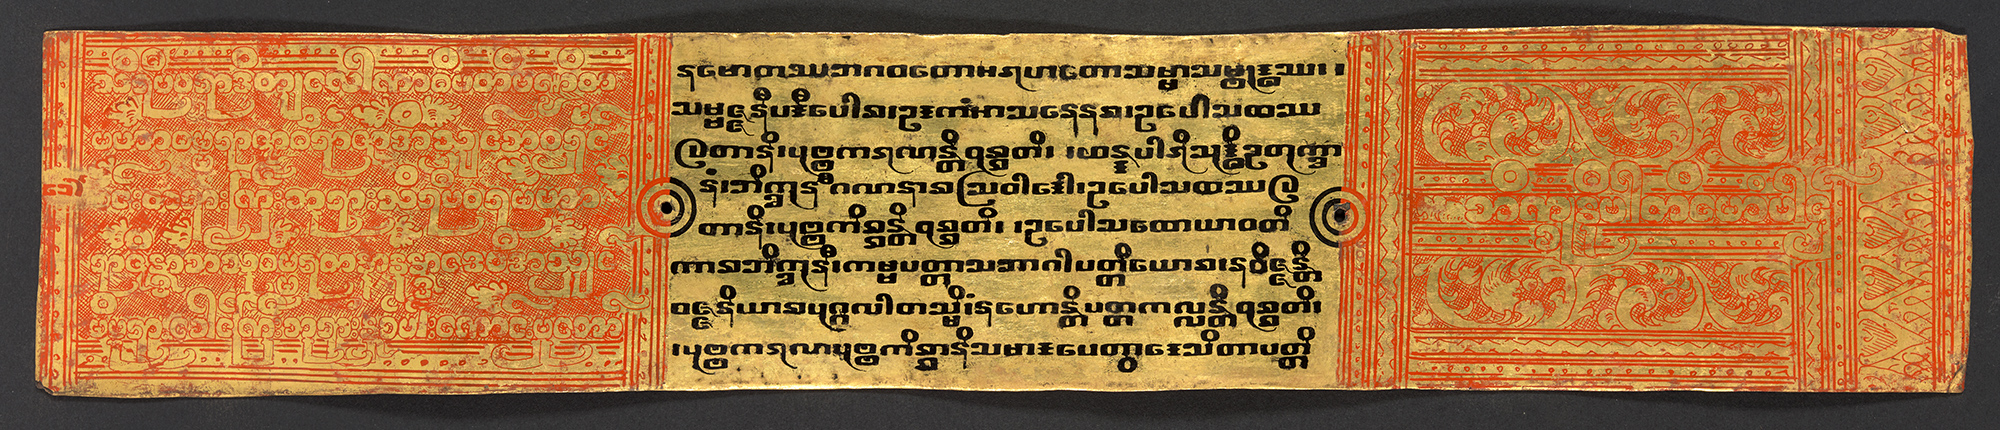 Collection of rules for Buddhist nuns